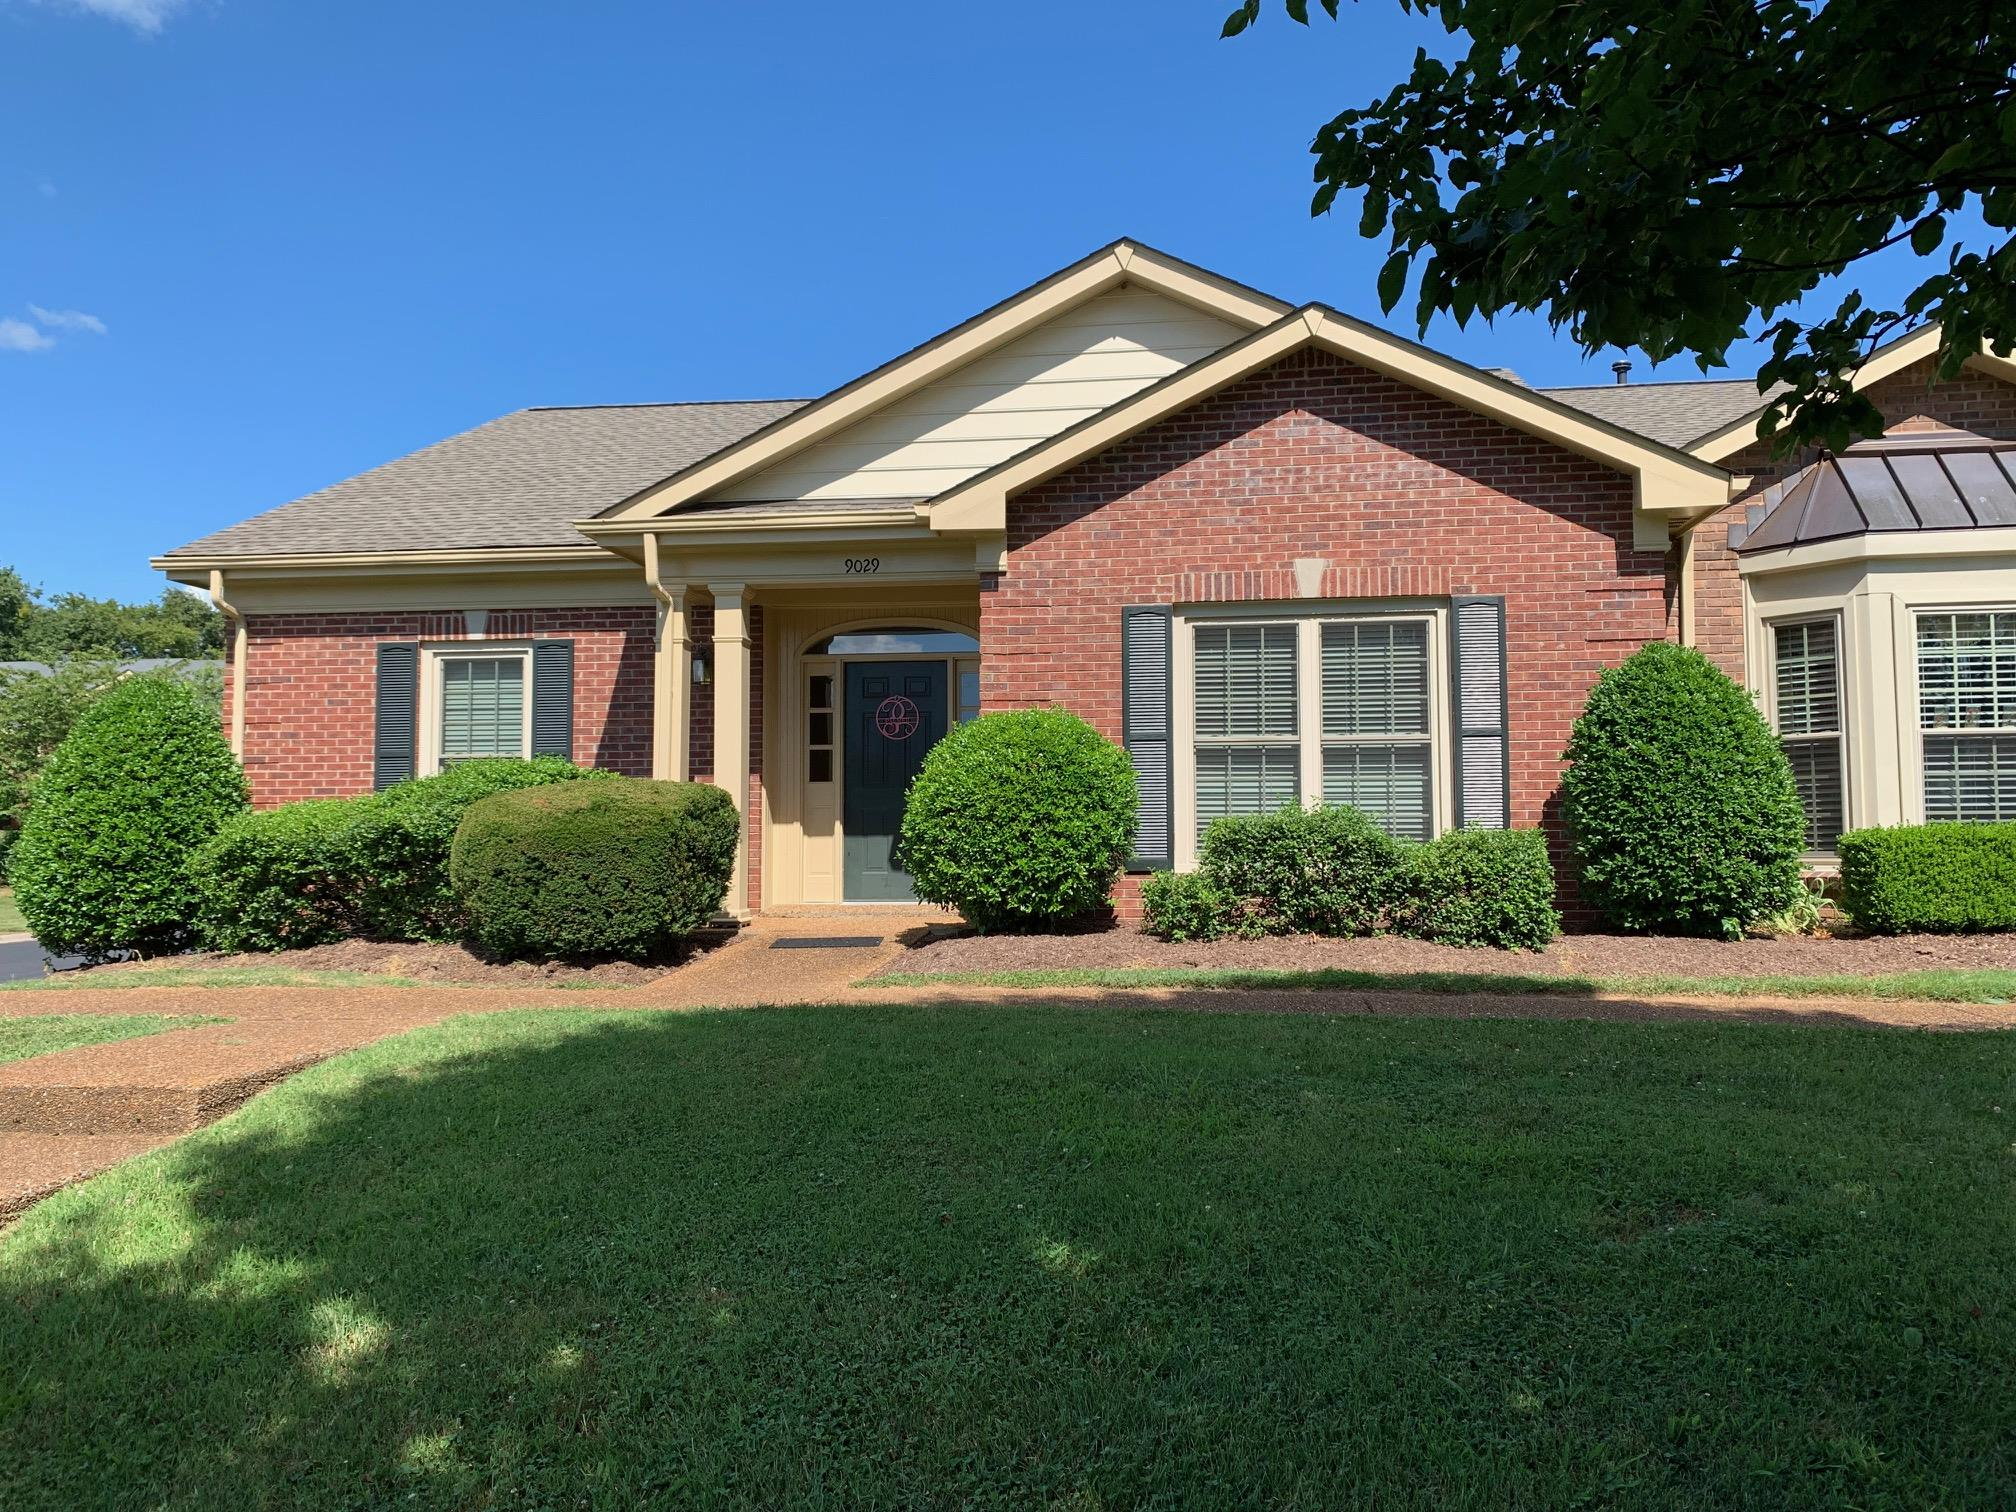 9029 Sawyer Brown Rd, Bellevue in Davidson County County, TN 37221 Home for Sale